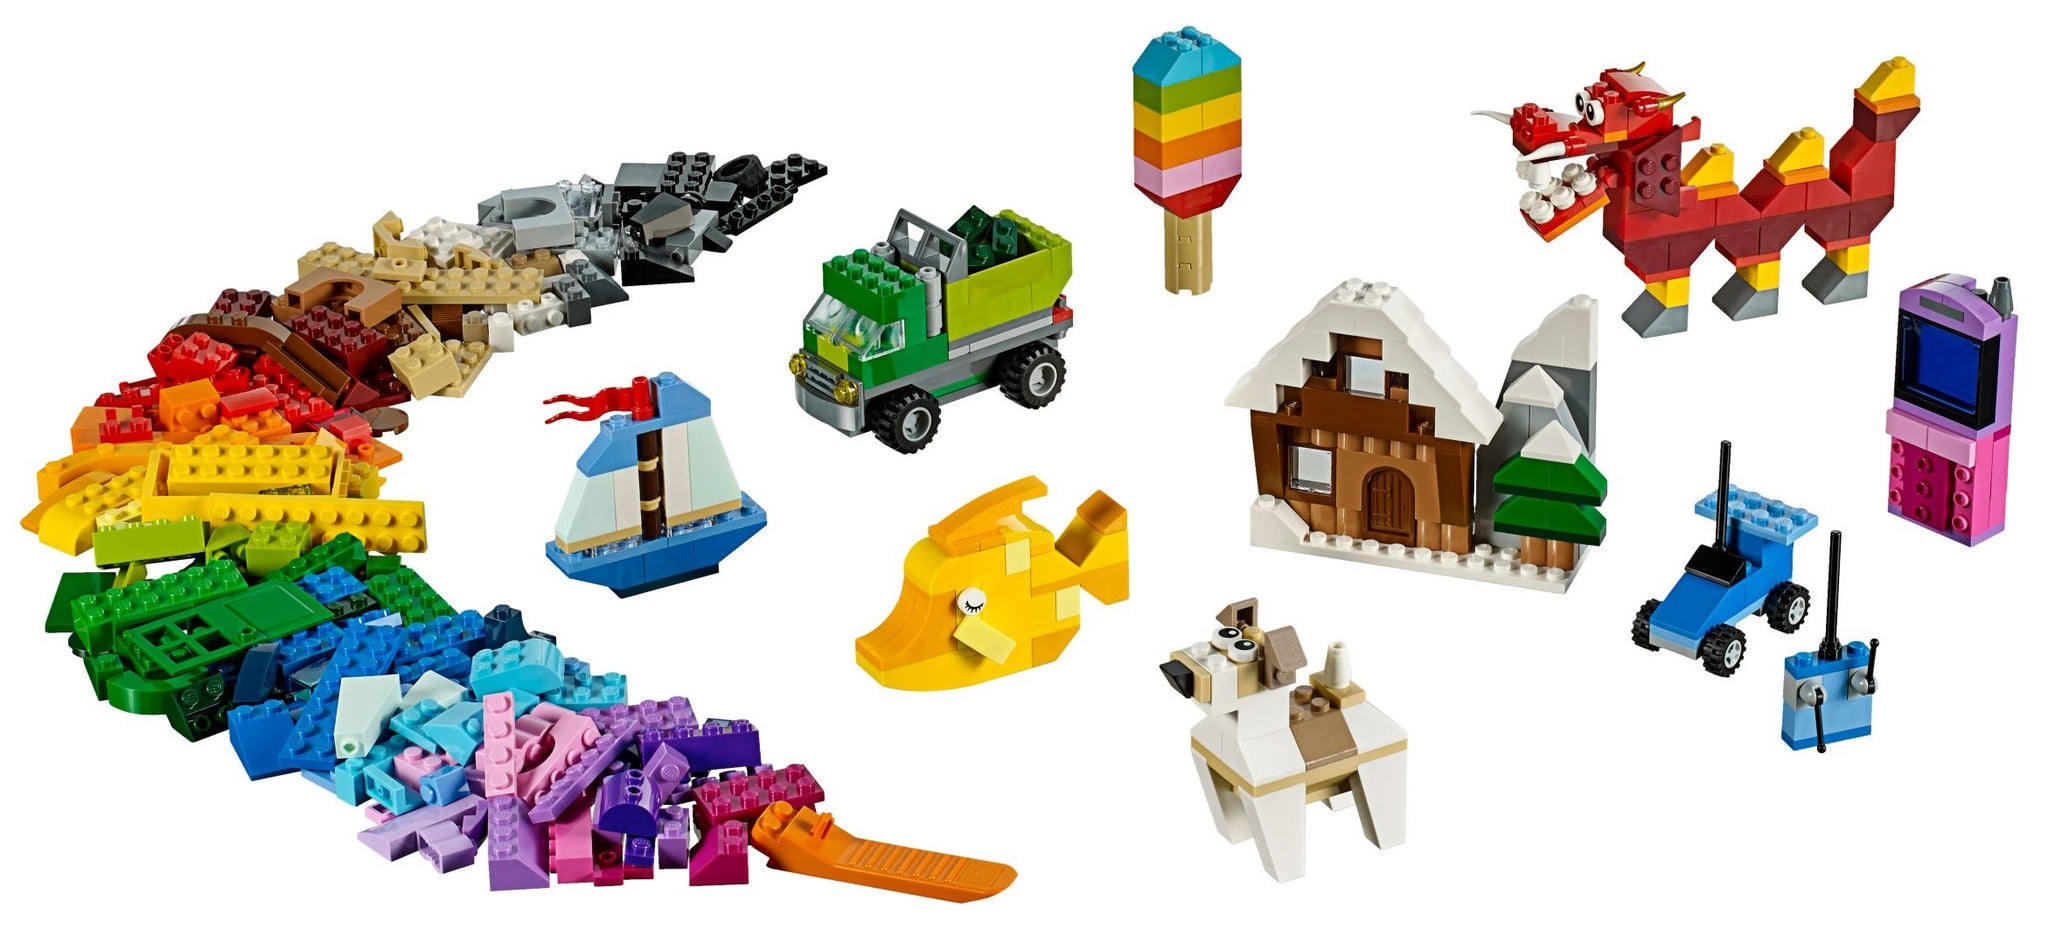 LEGO - Classic - Creative Box Building Set (10704)